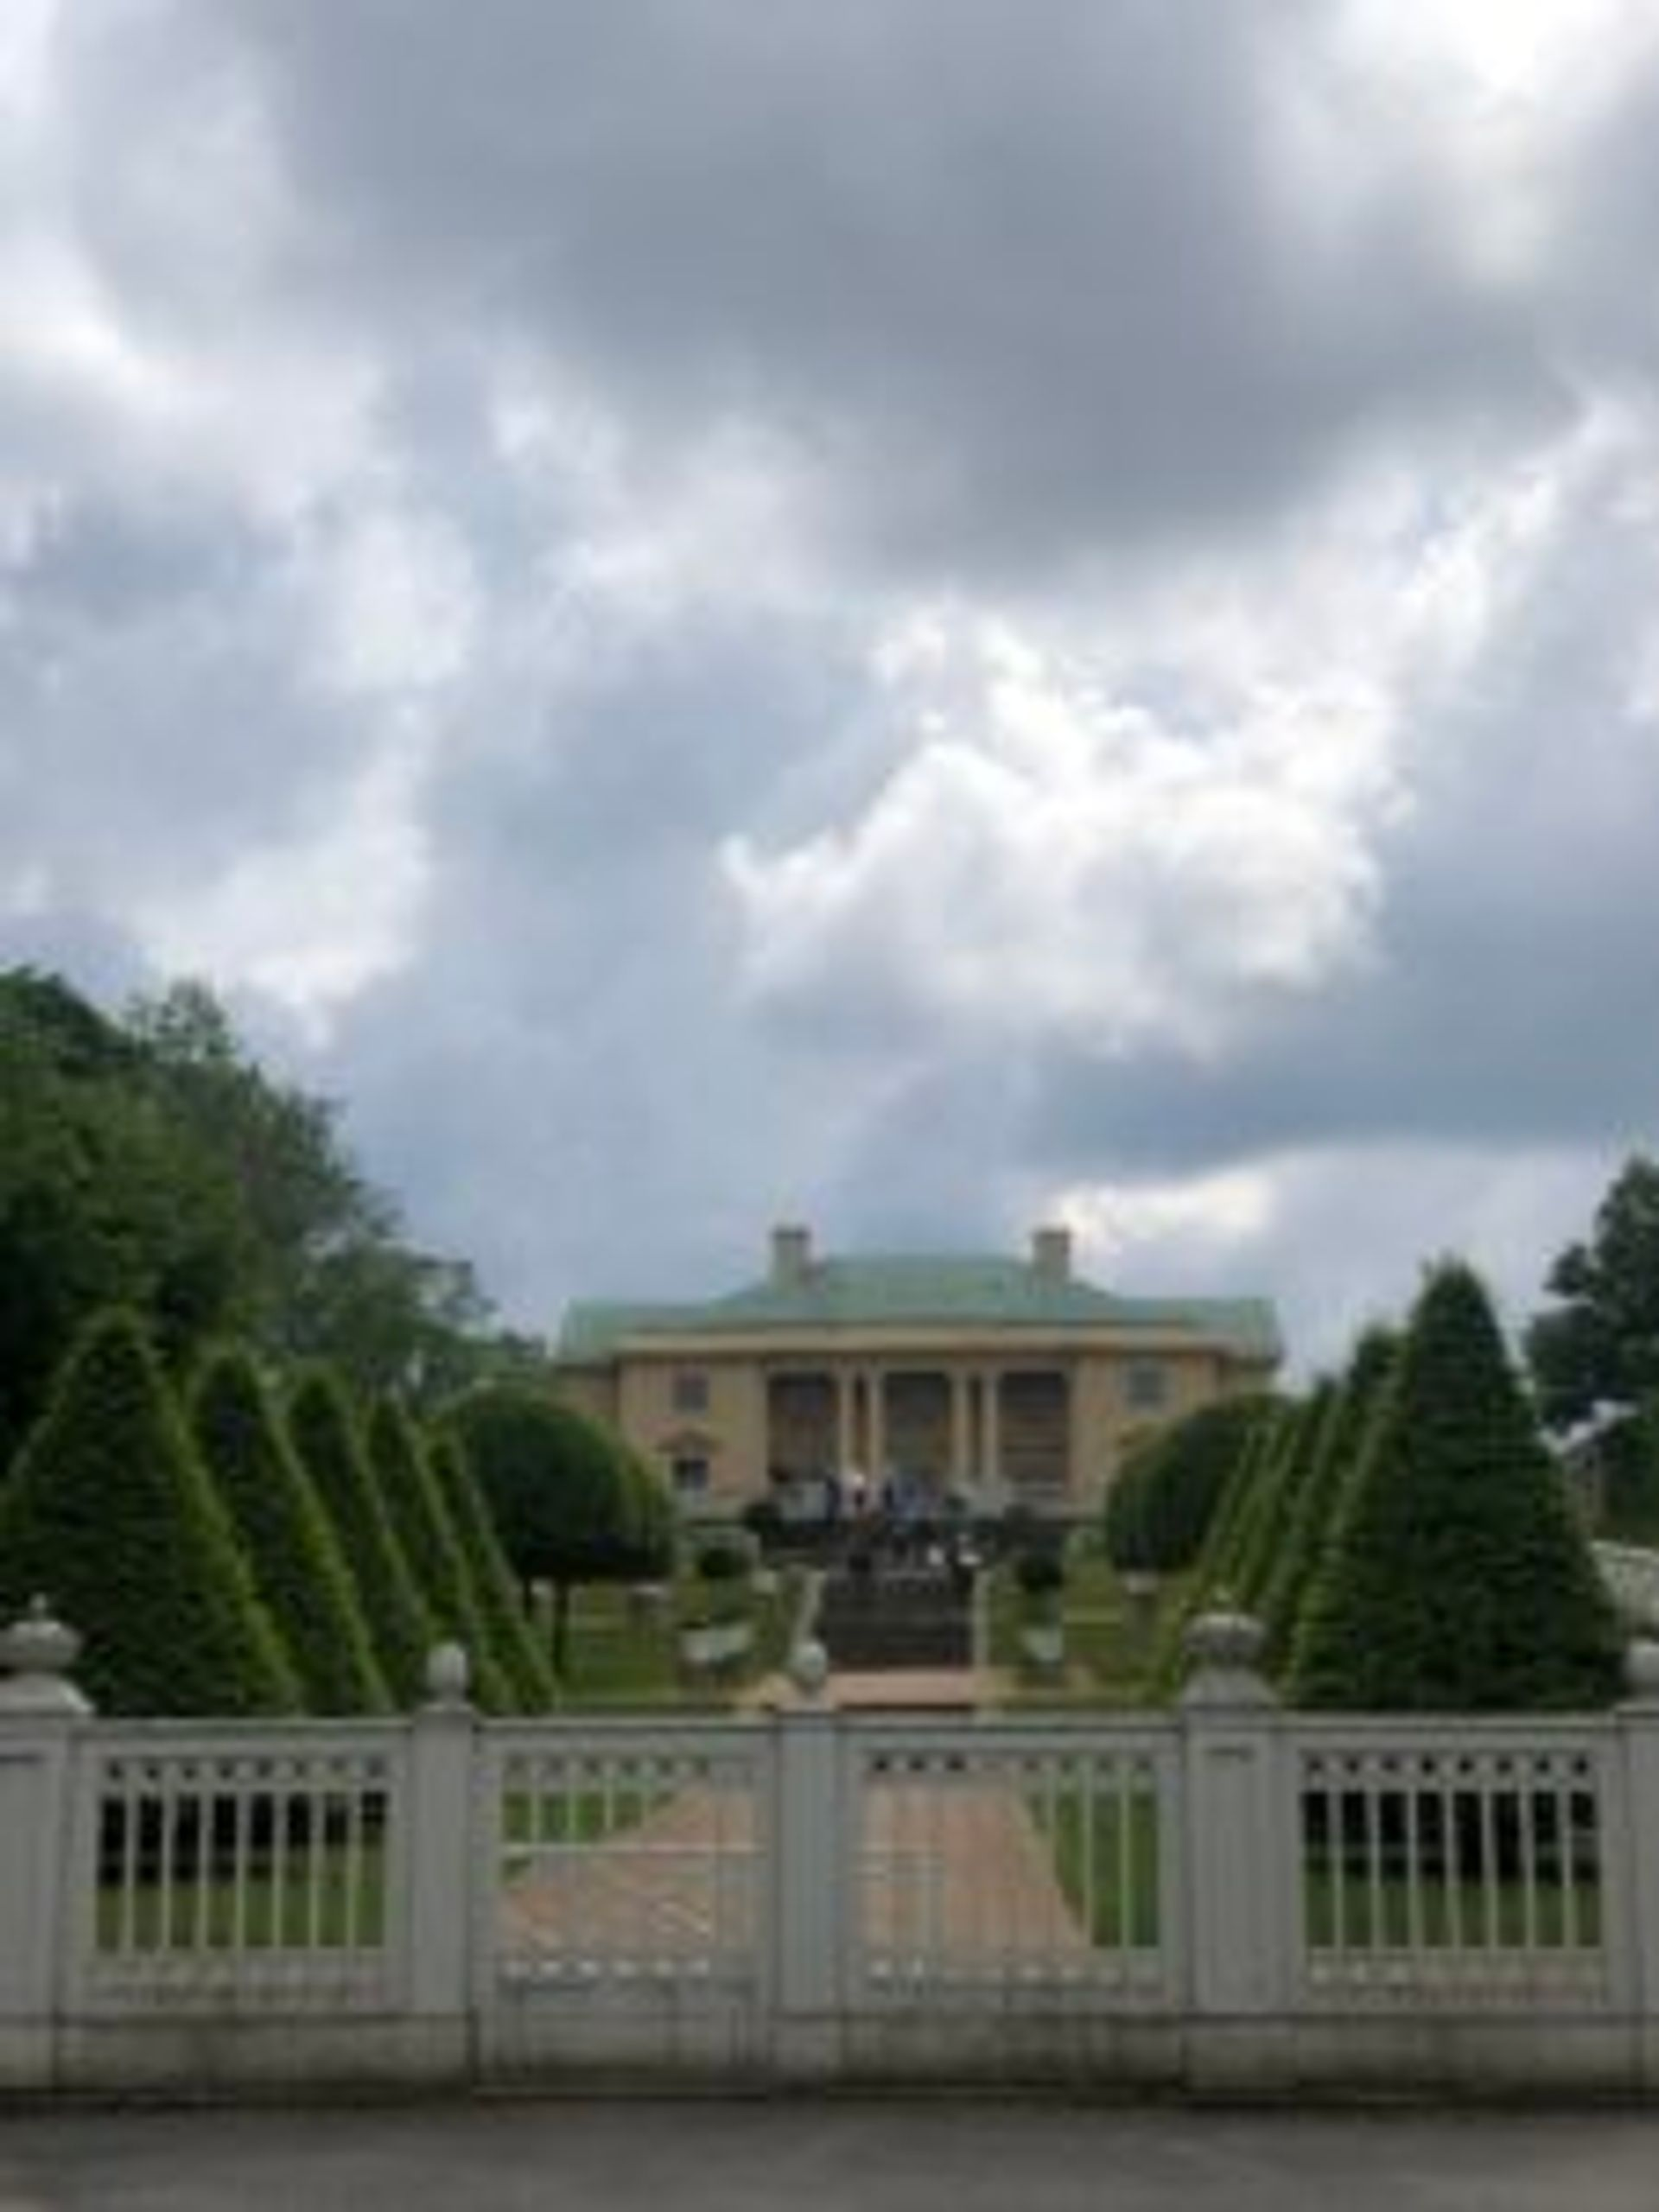 Gunnebo House and gardens from a distance.